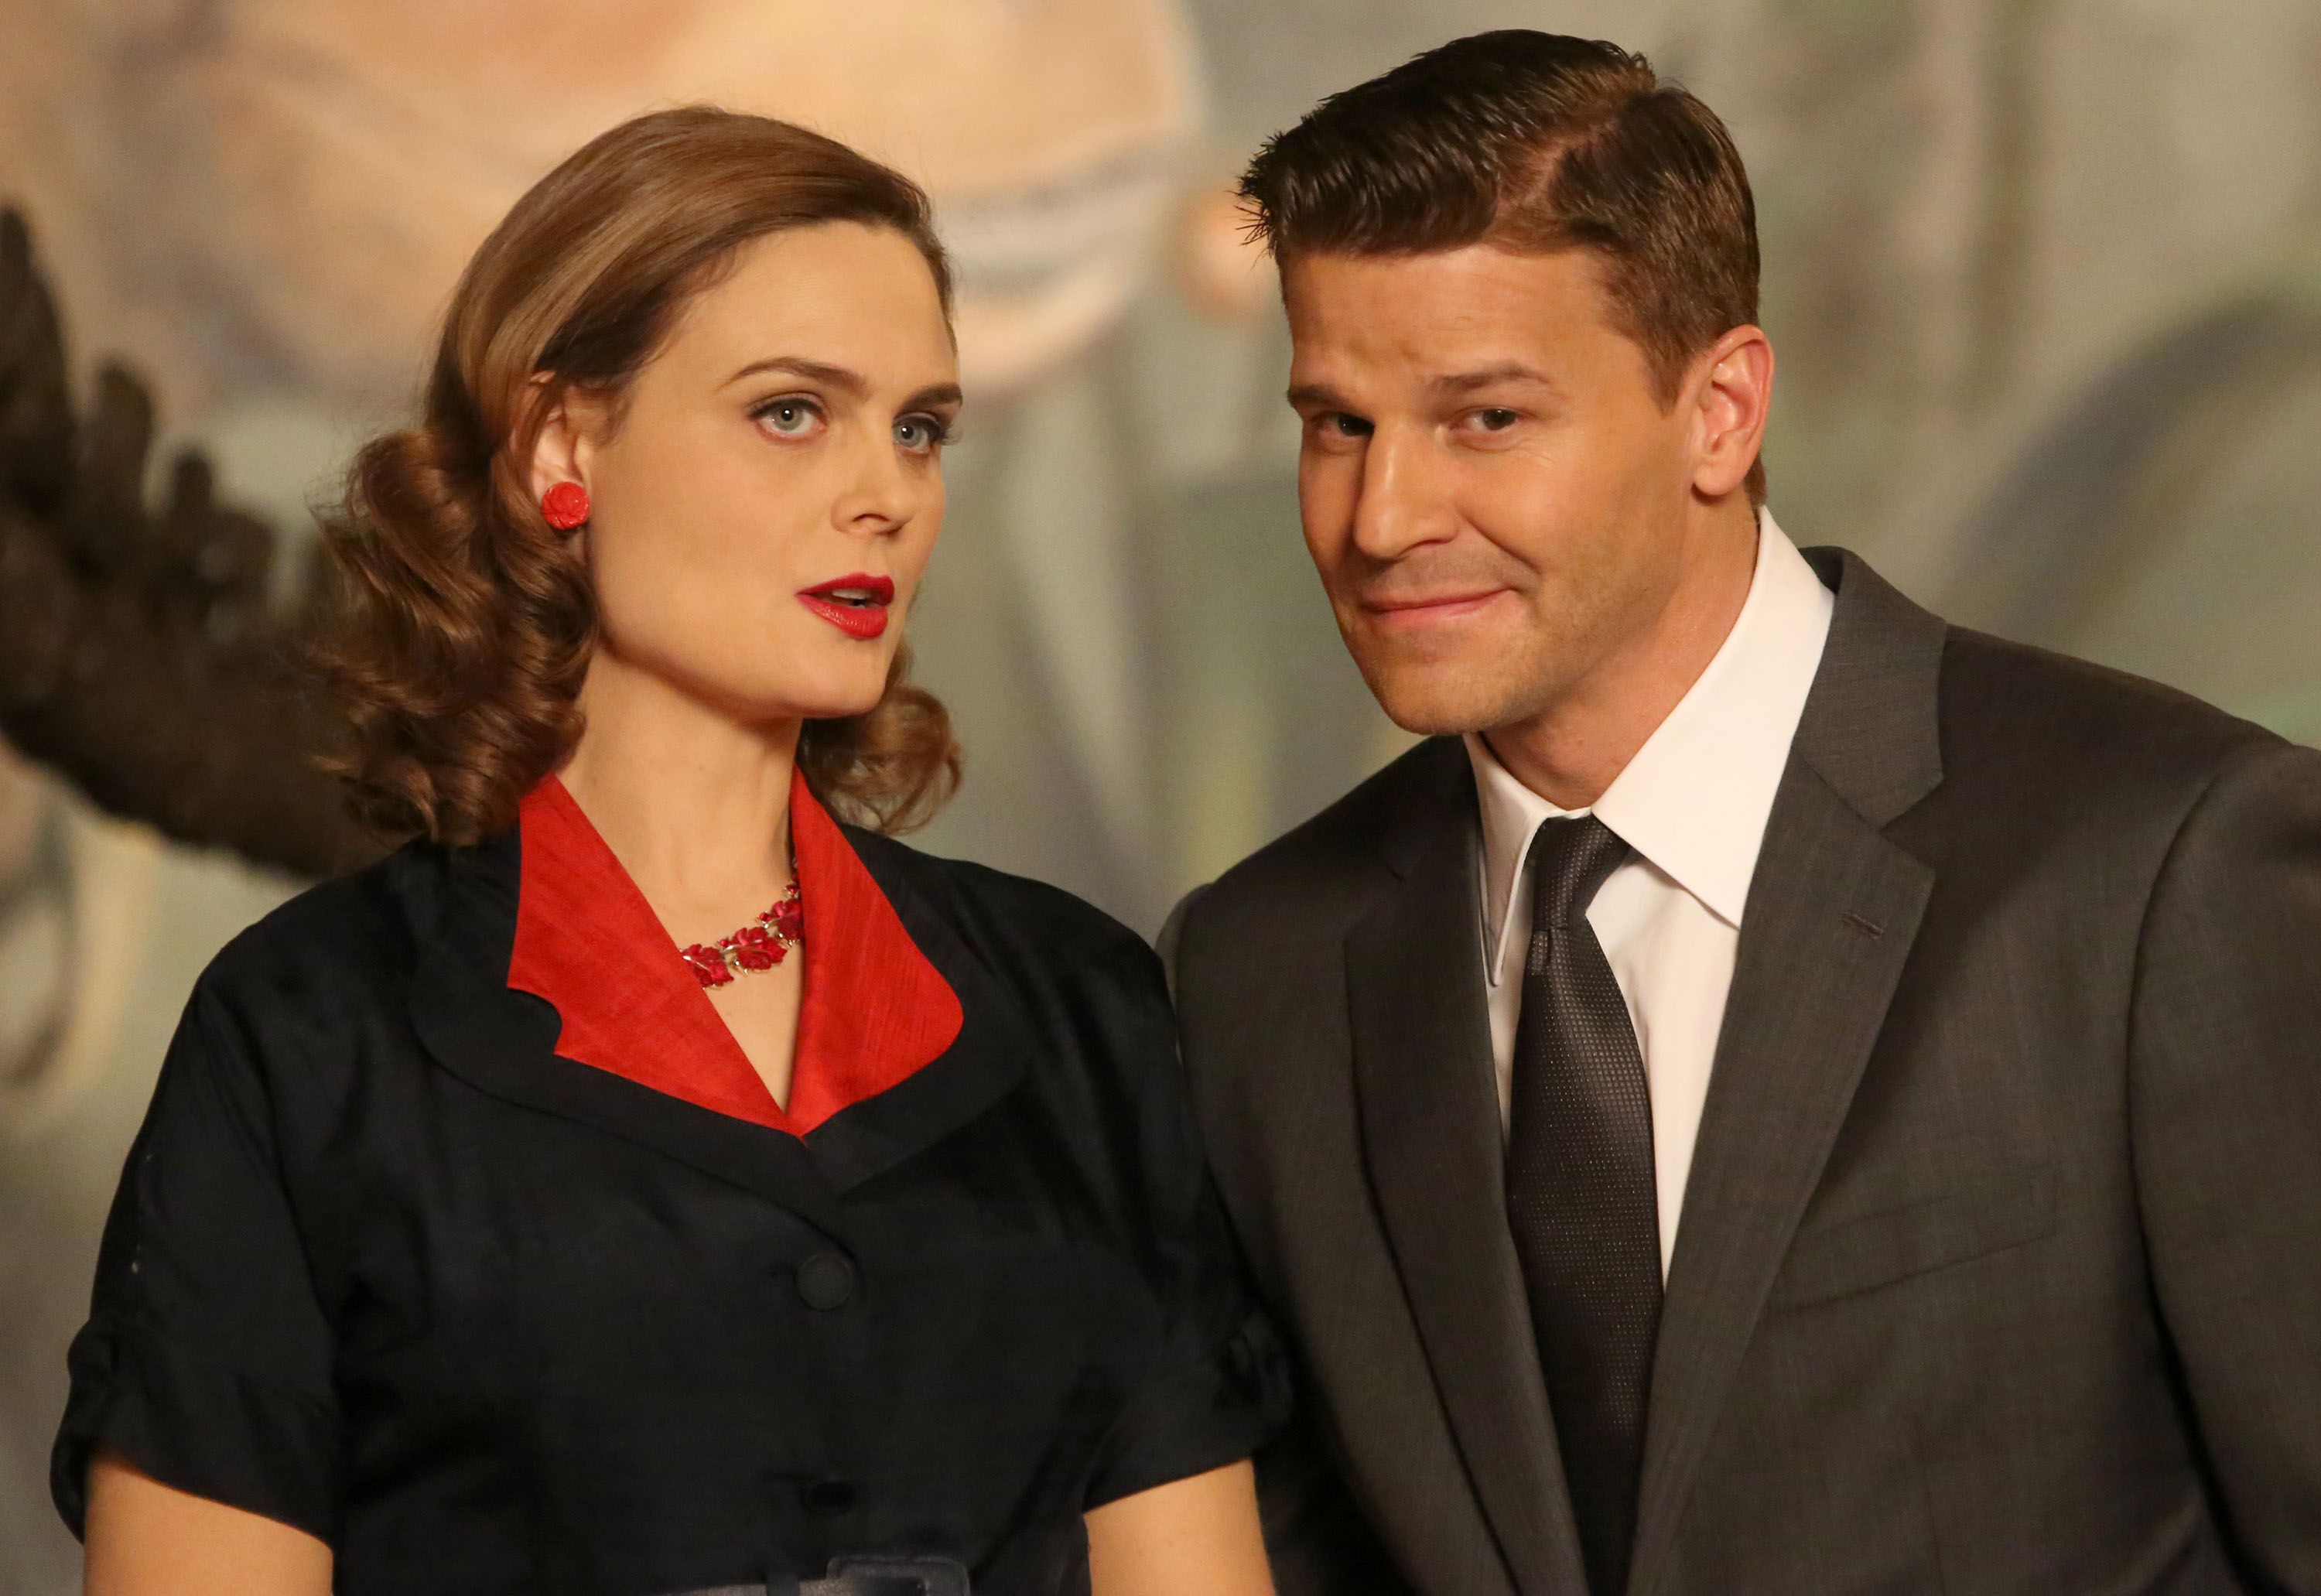 Stephen nathan talks bones the 200th episode being inspired by